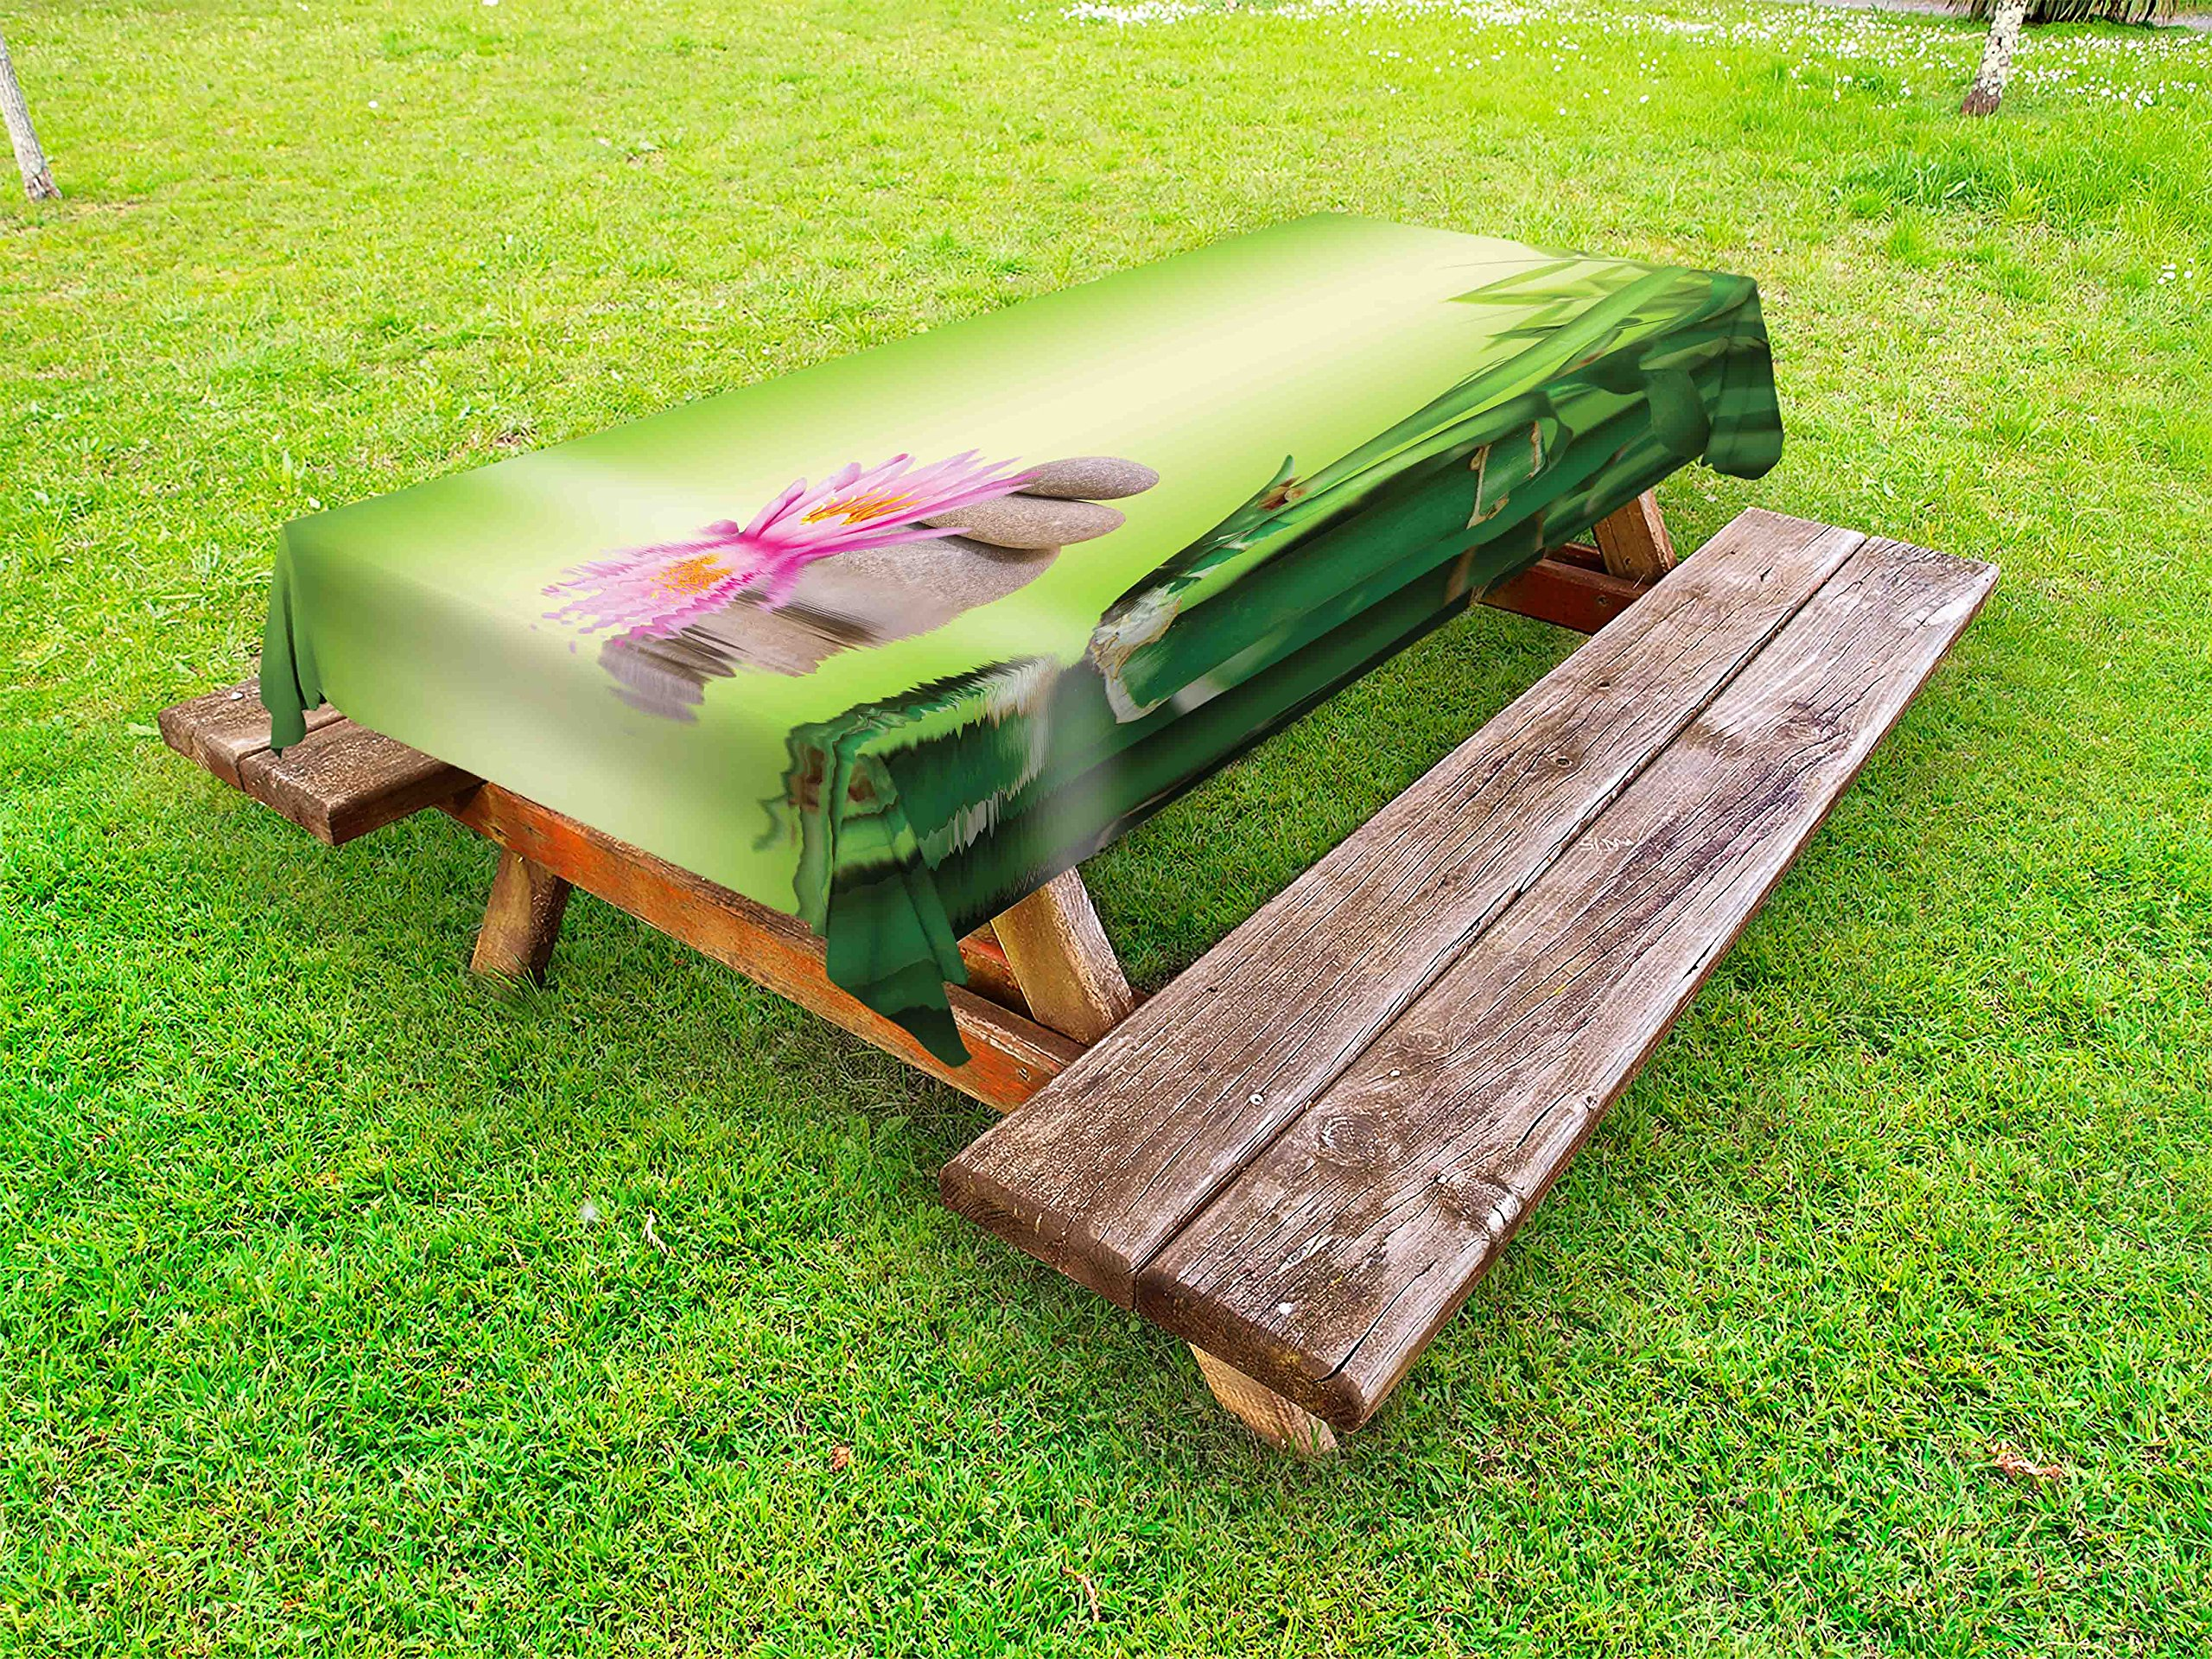 Ambesonne Spa Outdoor Tablecloth, Zen Garden Asian Self-Control Freshening Insight in Daily Life Mindful Activity Print, Decorative Washable Picnic Table Cloth, 58 X 104 inches, Green Pink